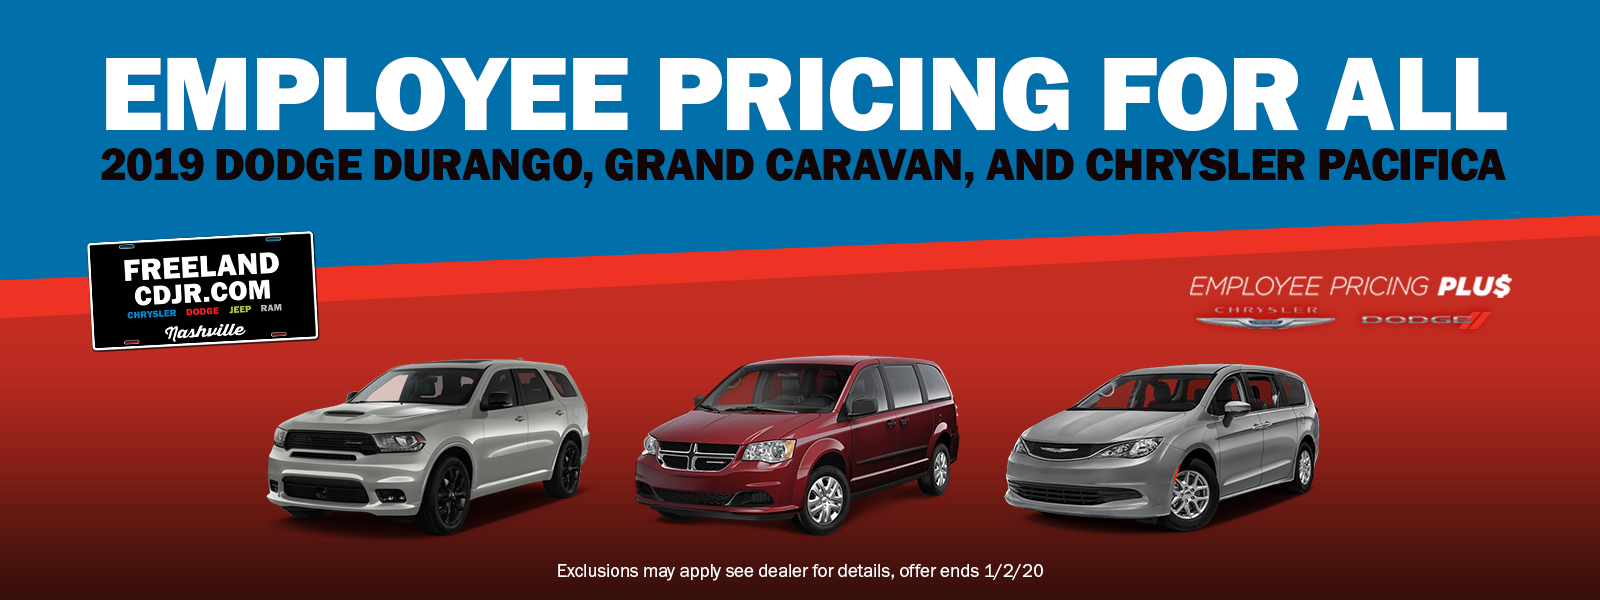 Dodge durango, grand caravan, and chrysler pacifica employee pricing